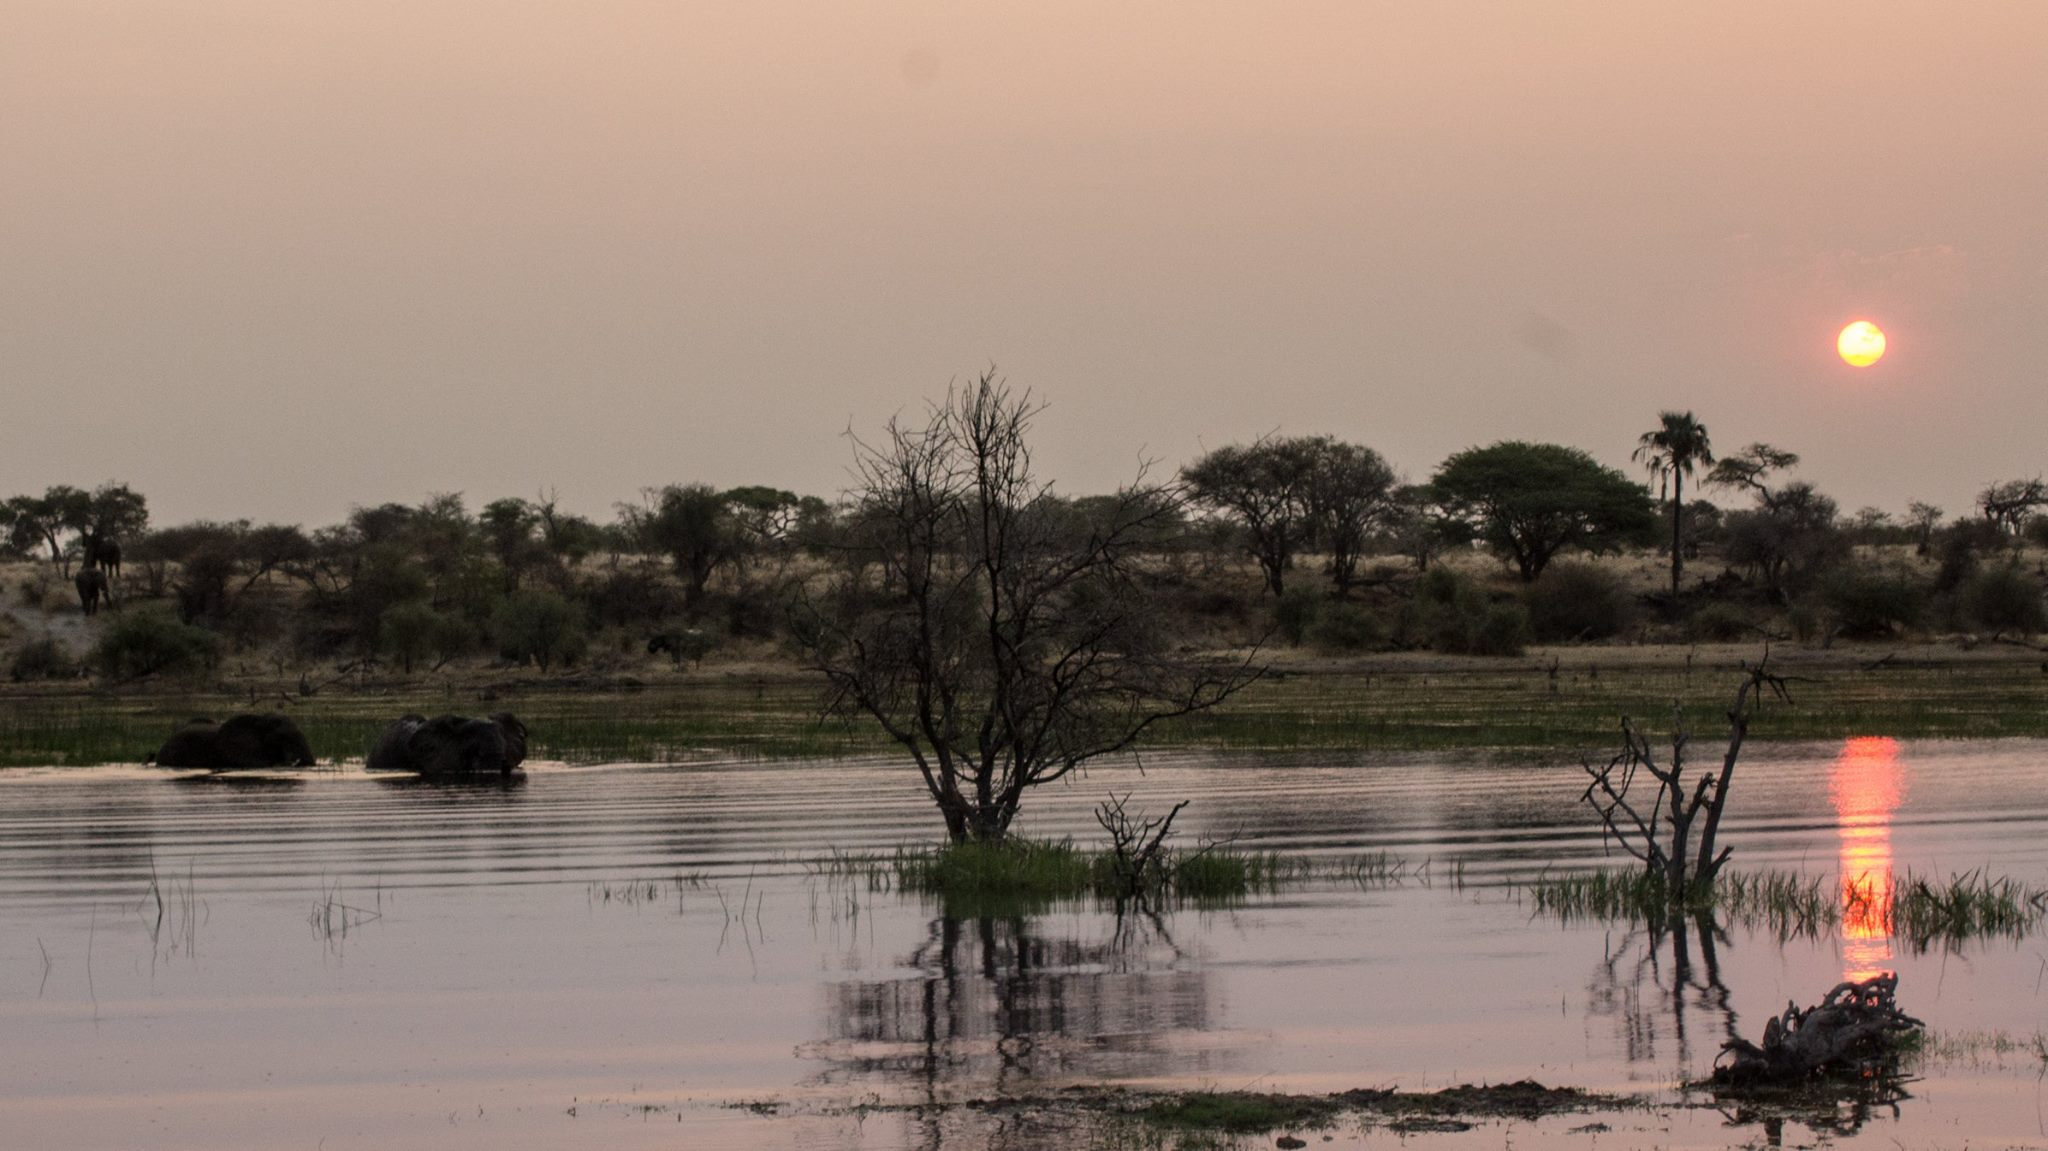 Elephants swimming across the Boteti River at sunset.